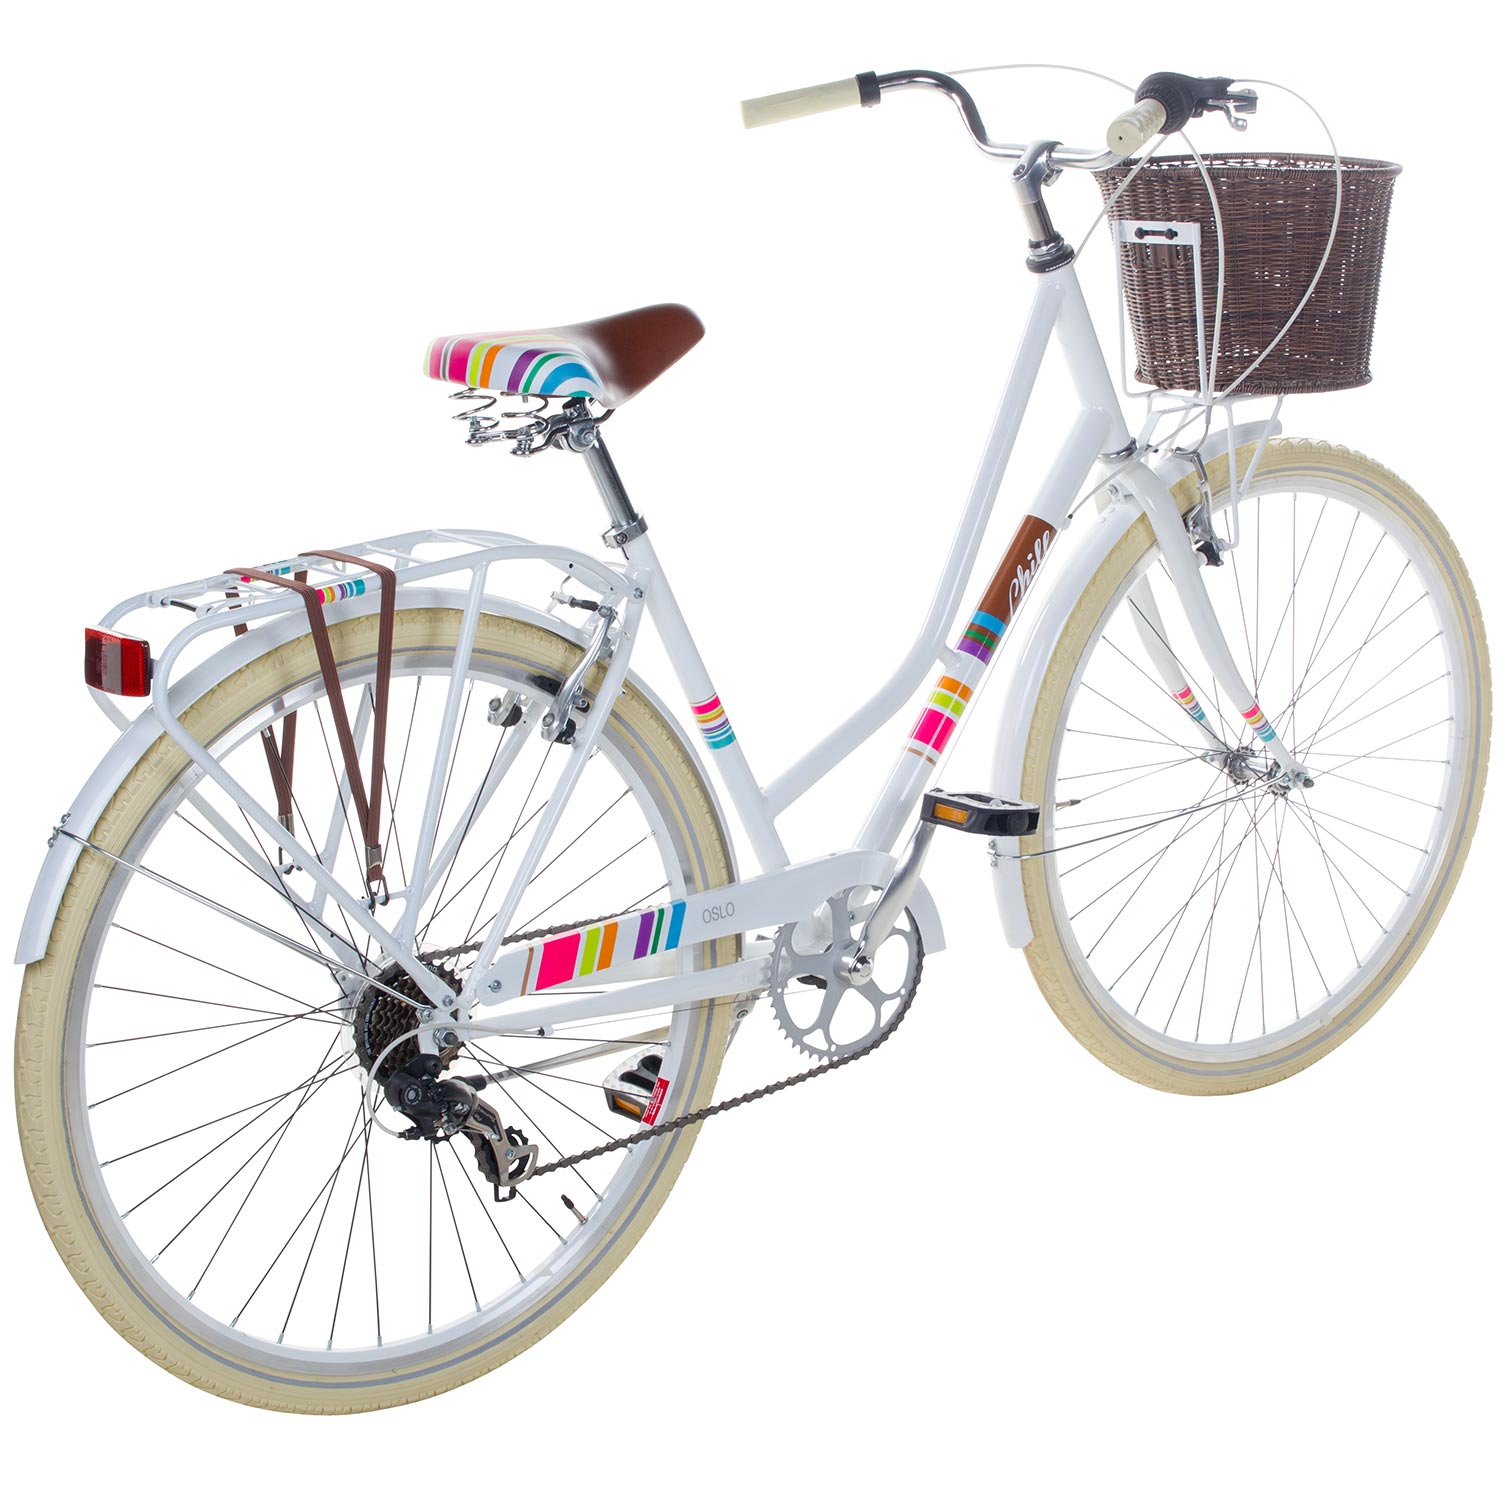 28 zoll chill damenrad citybike fahrrad hollandrad stadtfahrrad 7 gang ebay. Black Bedroom Furniture Sets. Home Design Ideas